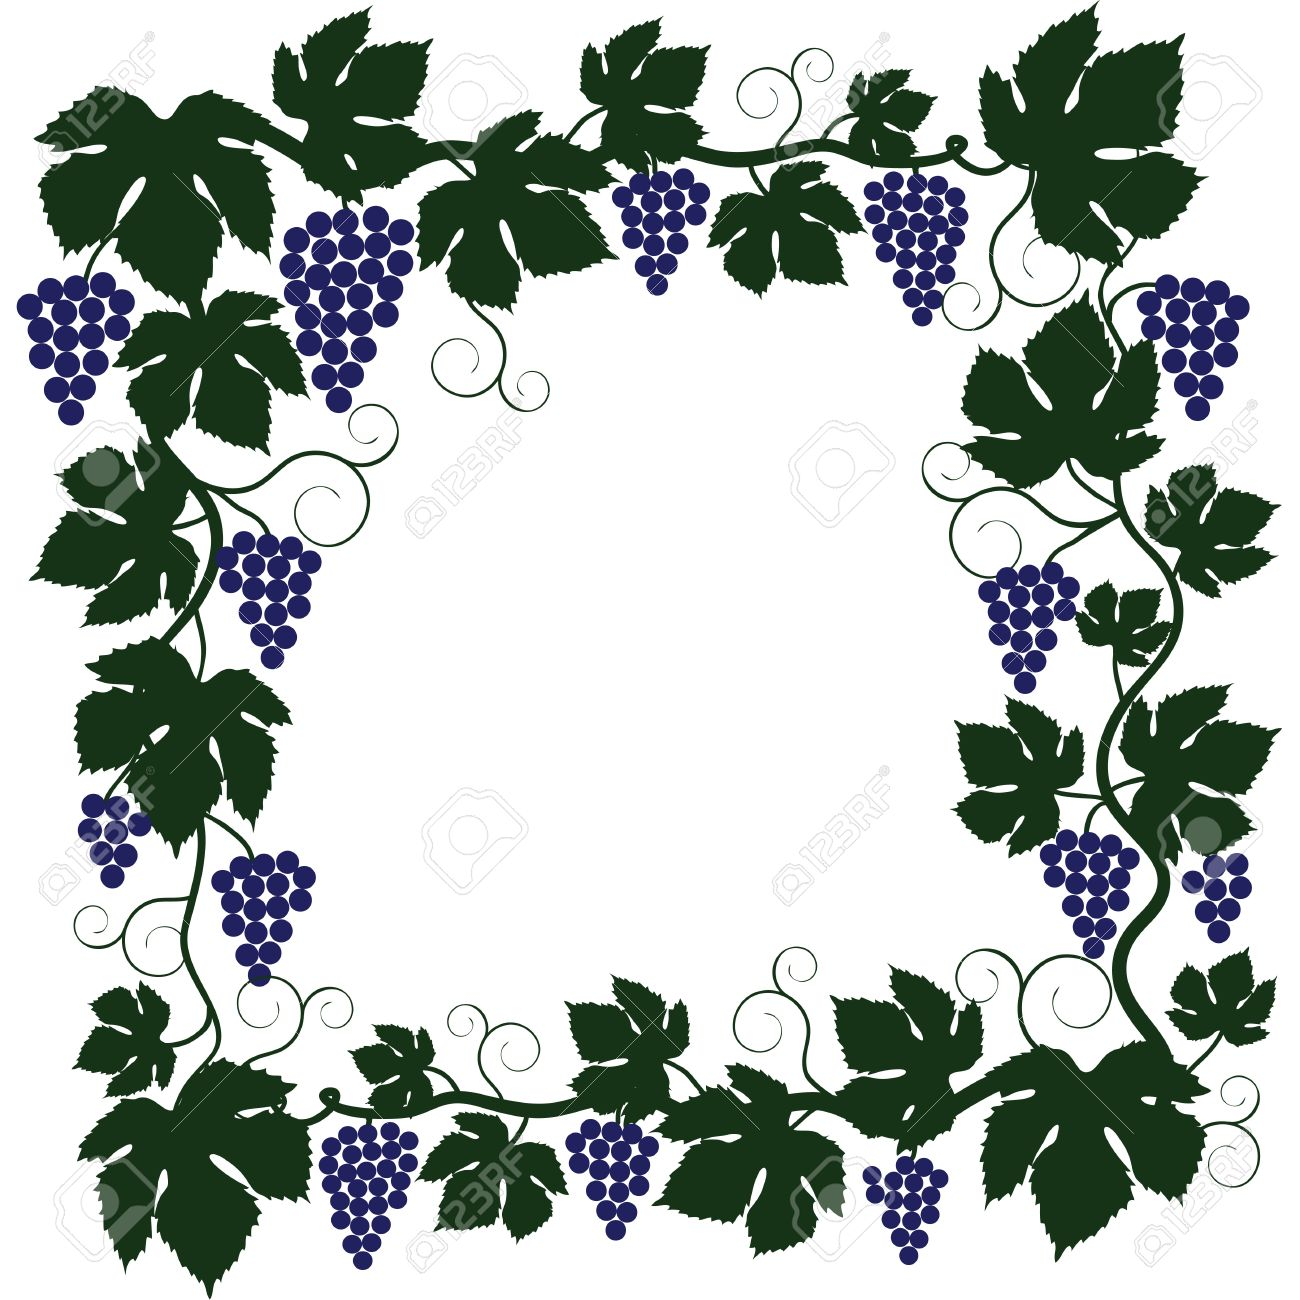 Bunch Of Grapes And Vine Frame Royalty Free Cliparts, Vectors, And ...